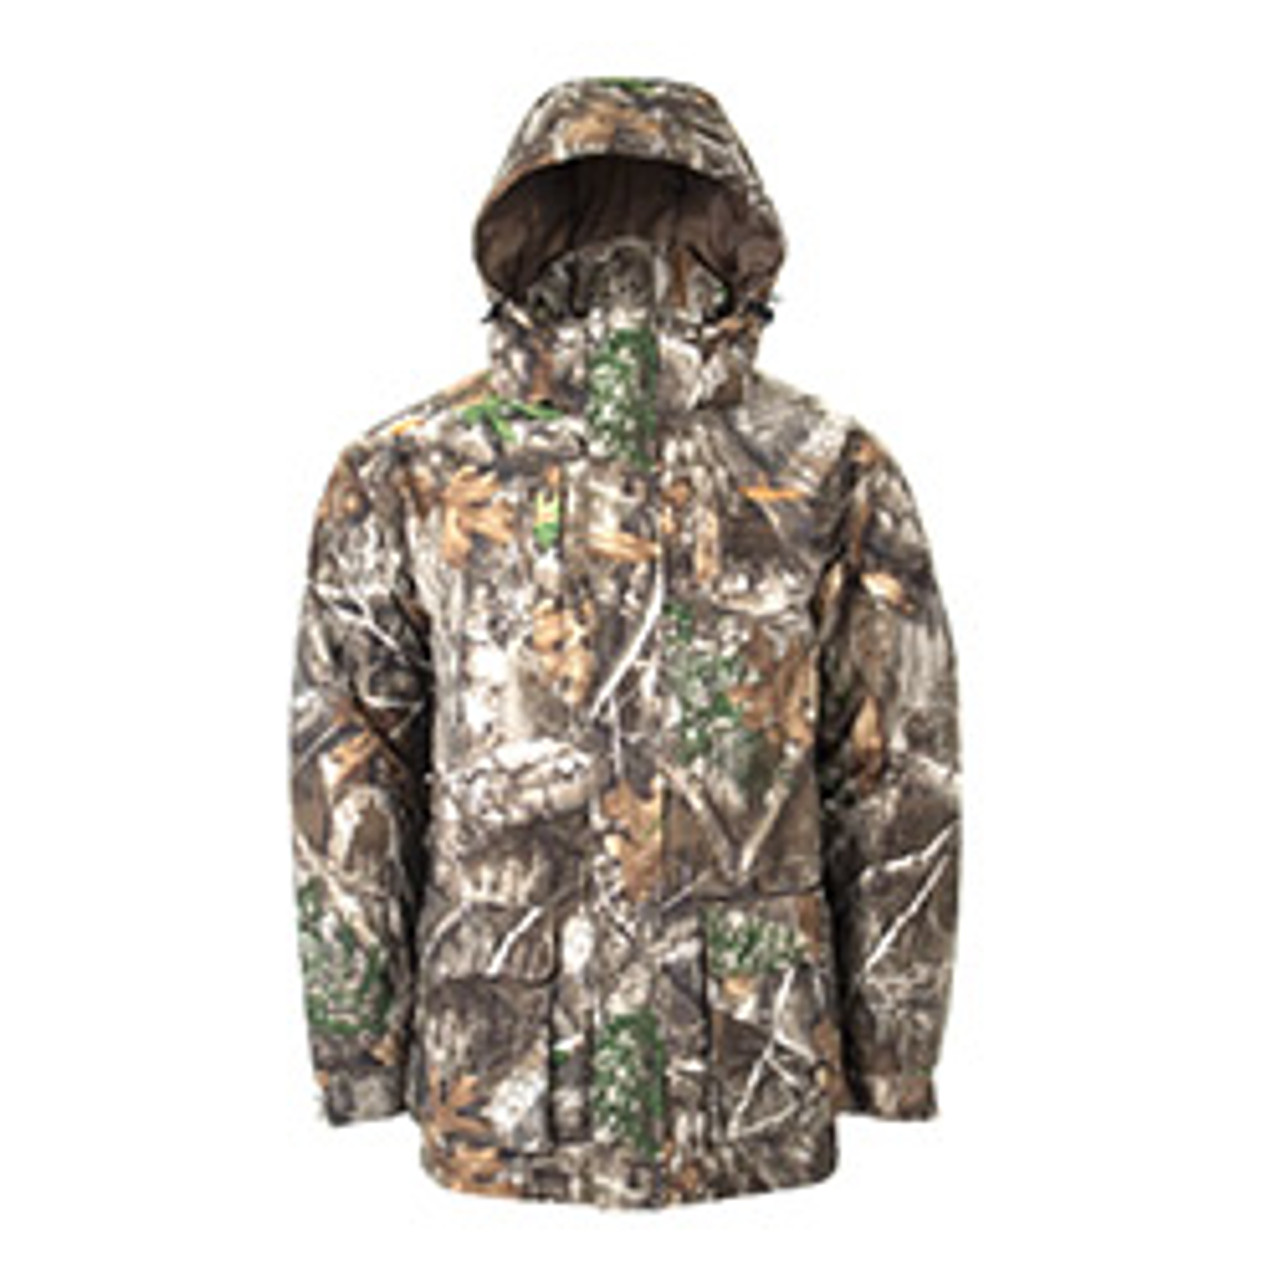 Insulated Waterproof Realtree Edge Parka by Habit Apparel